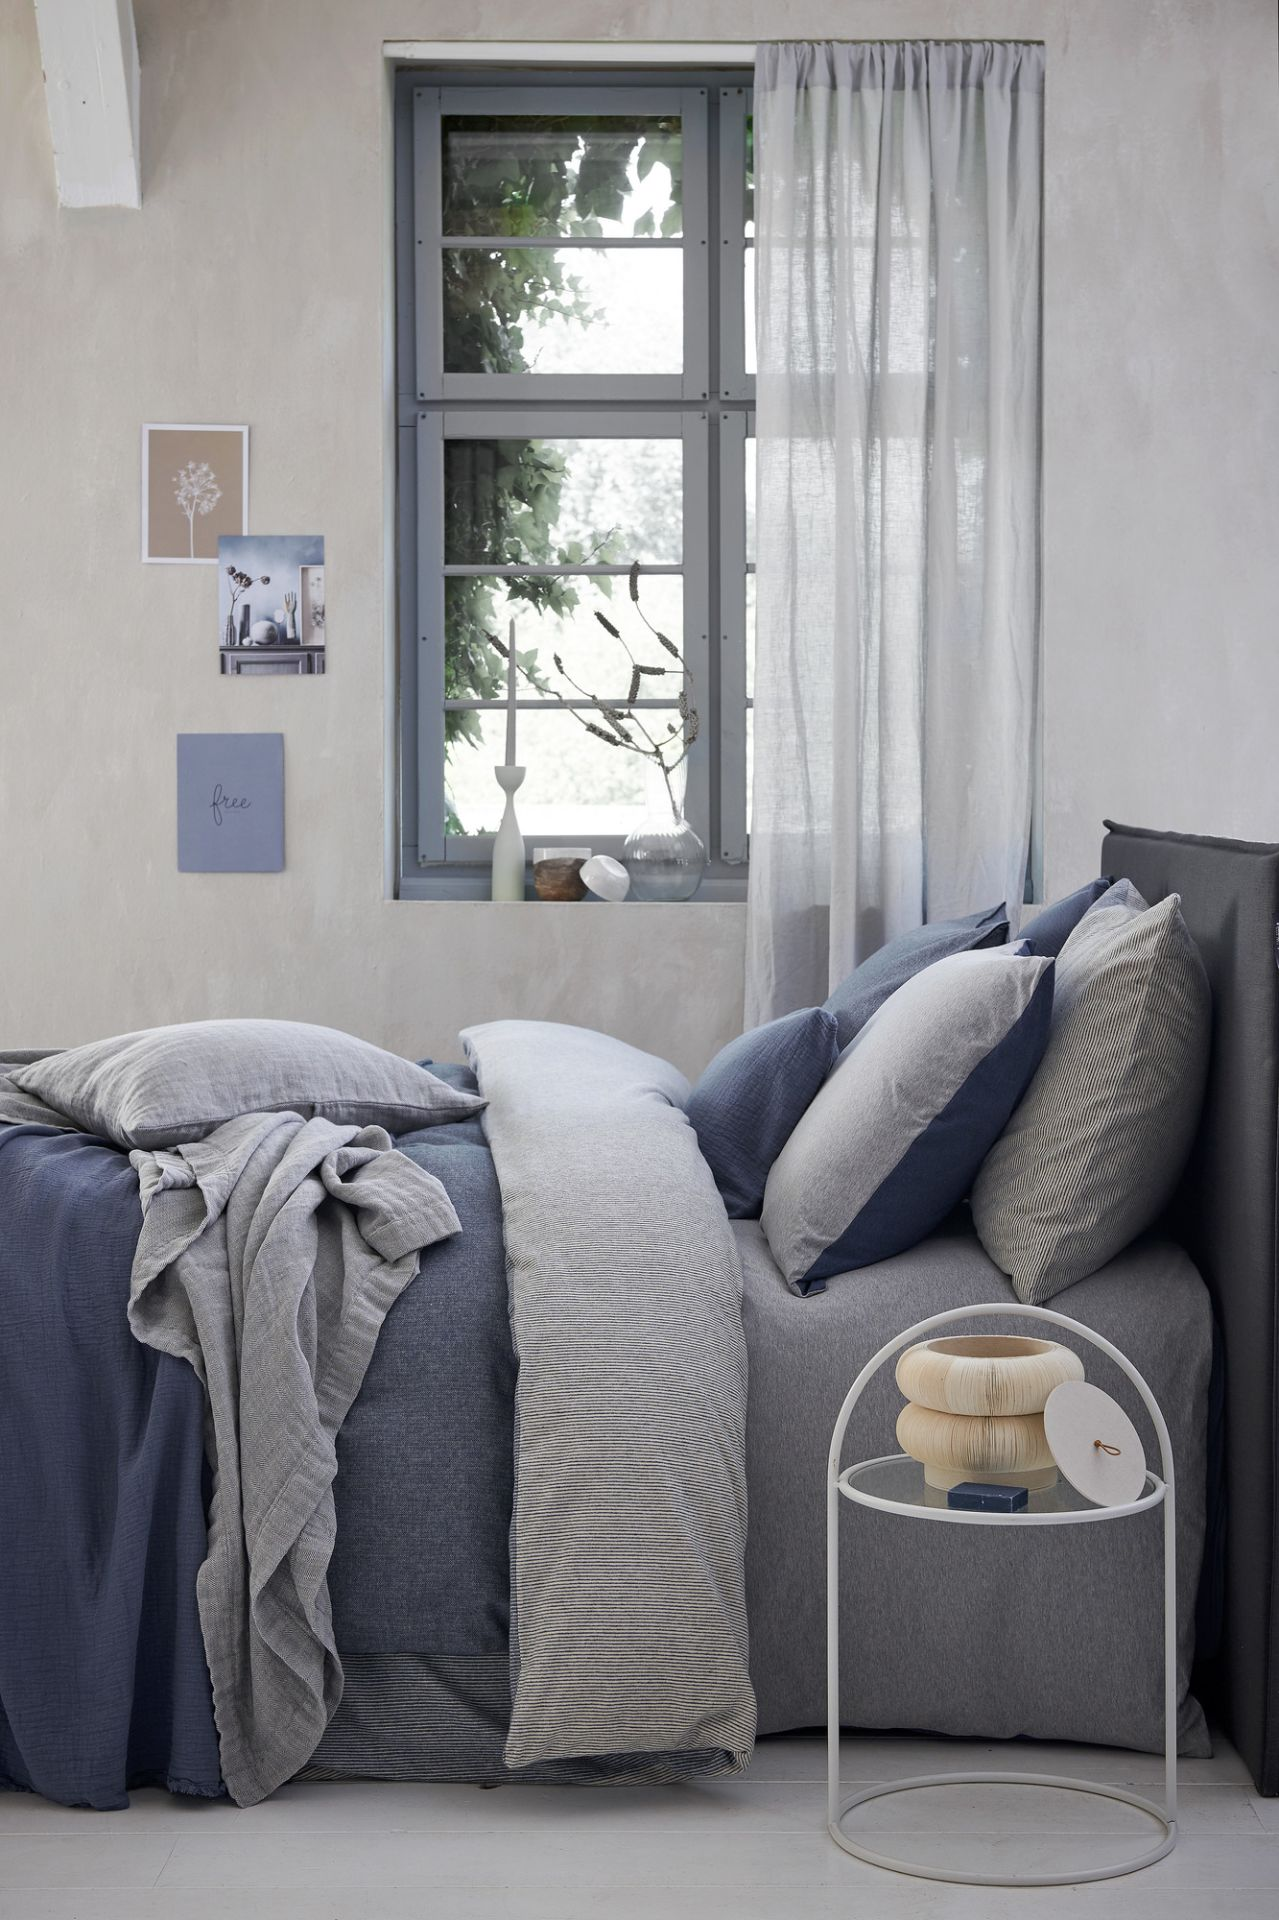 VanDyck bedtextiel Home 79, Home 80 184 Faded denim, Home 84 Multi, Pure 22 011 grey, Pure 8 184 faded denim bij Den Ouden Wonen & Projecten in Mijdrecht